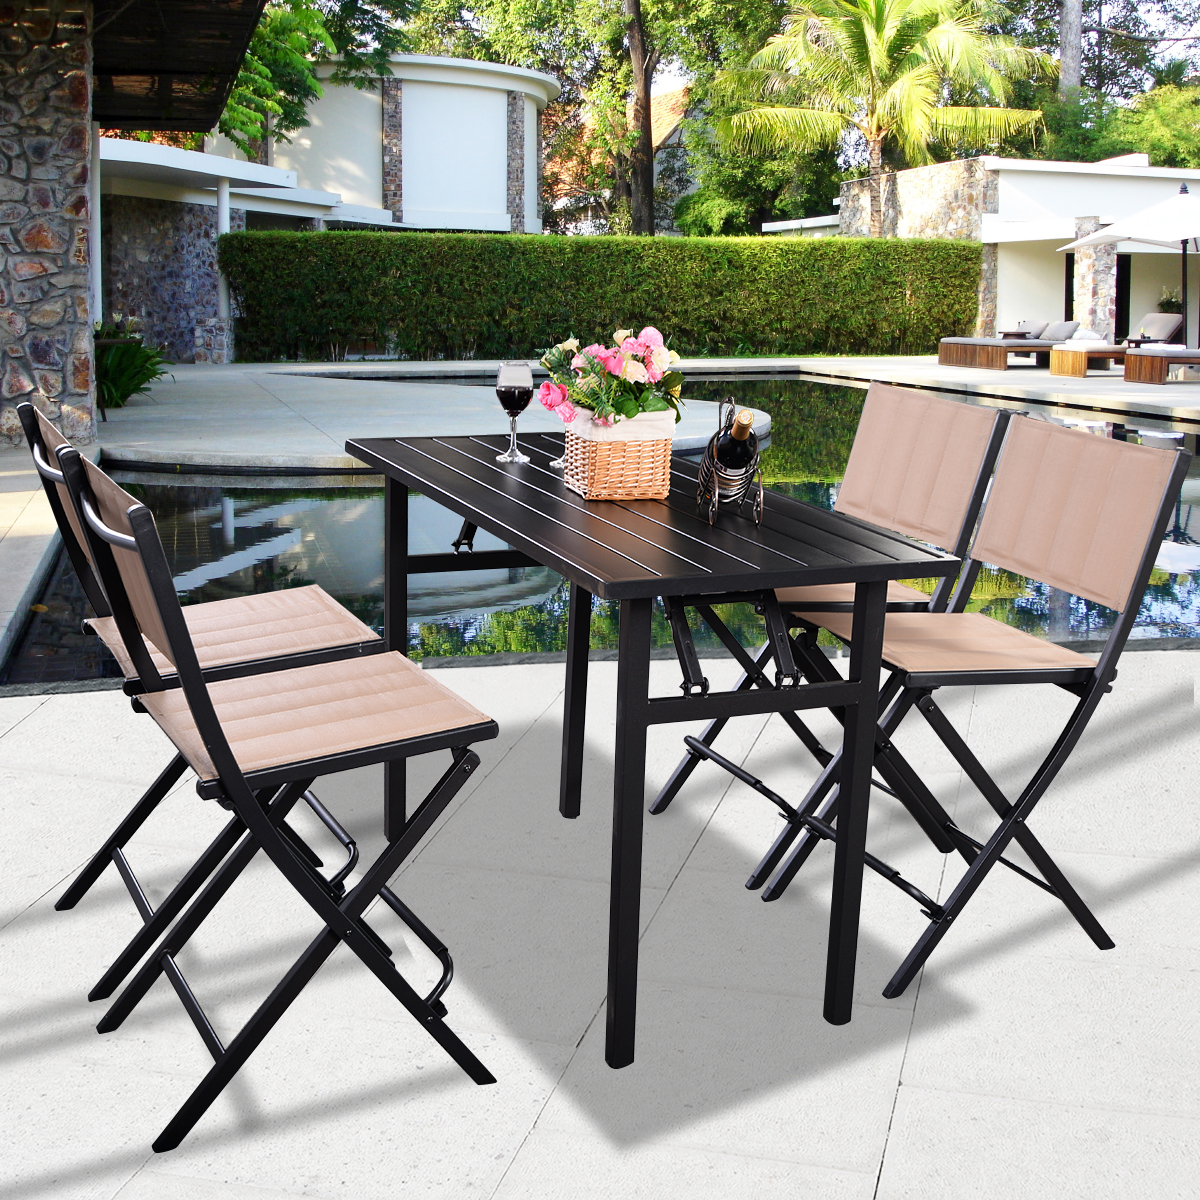 Costway 5 PCS Patio Outdoor Folding Chairs Rect Table Furniture